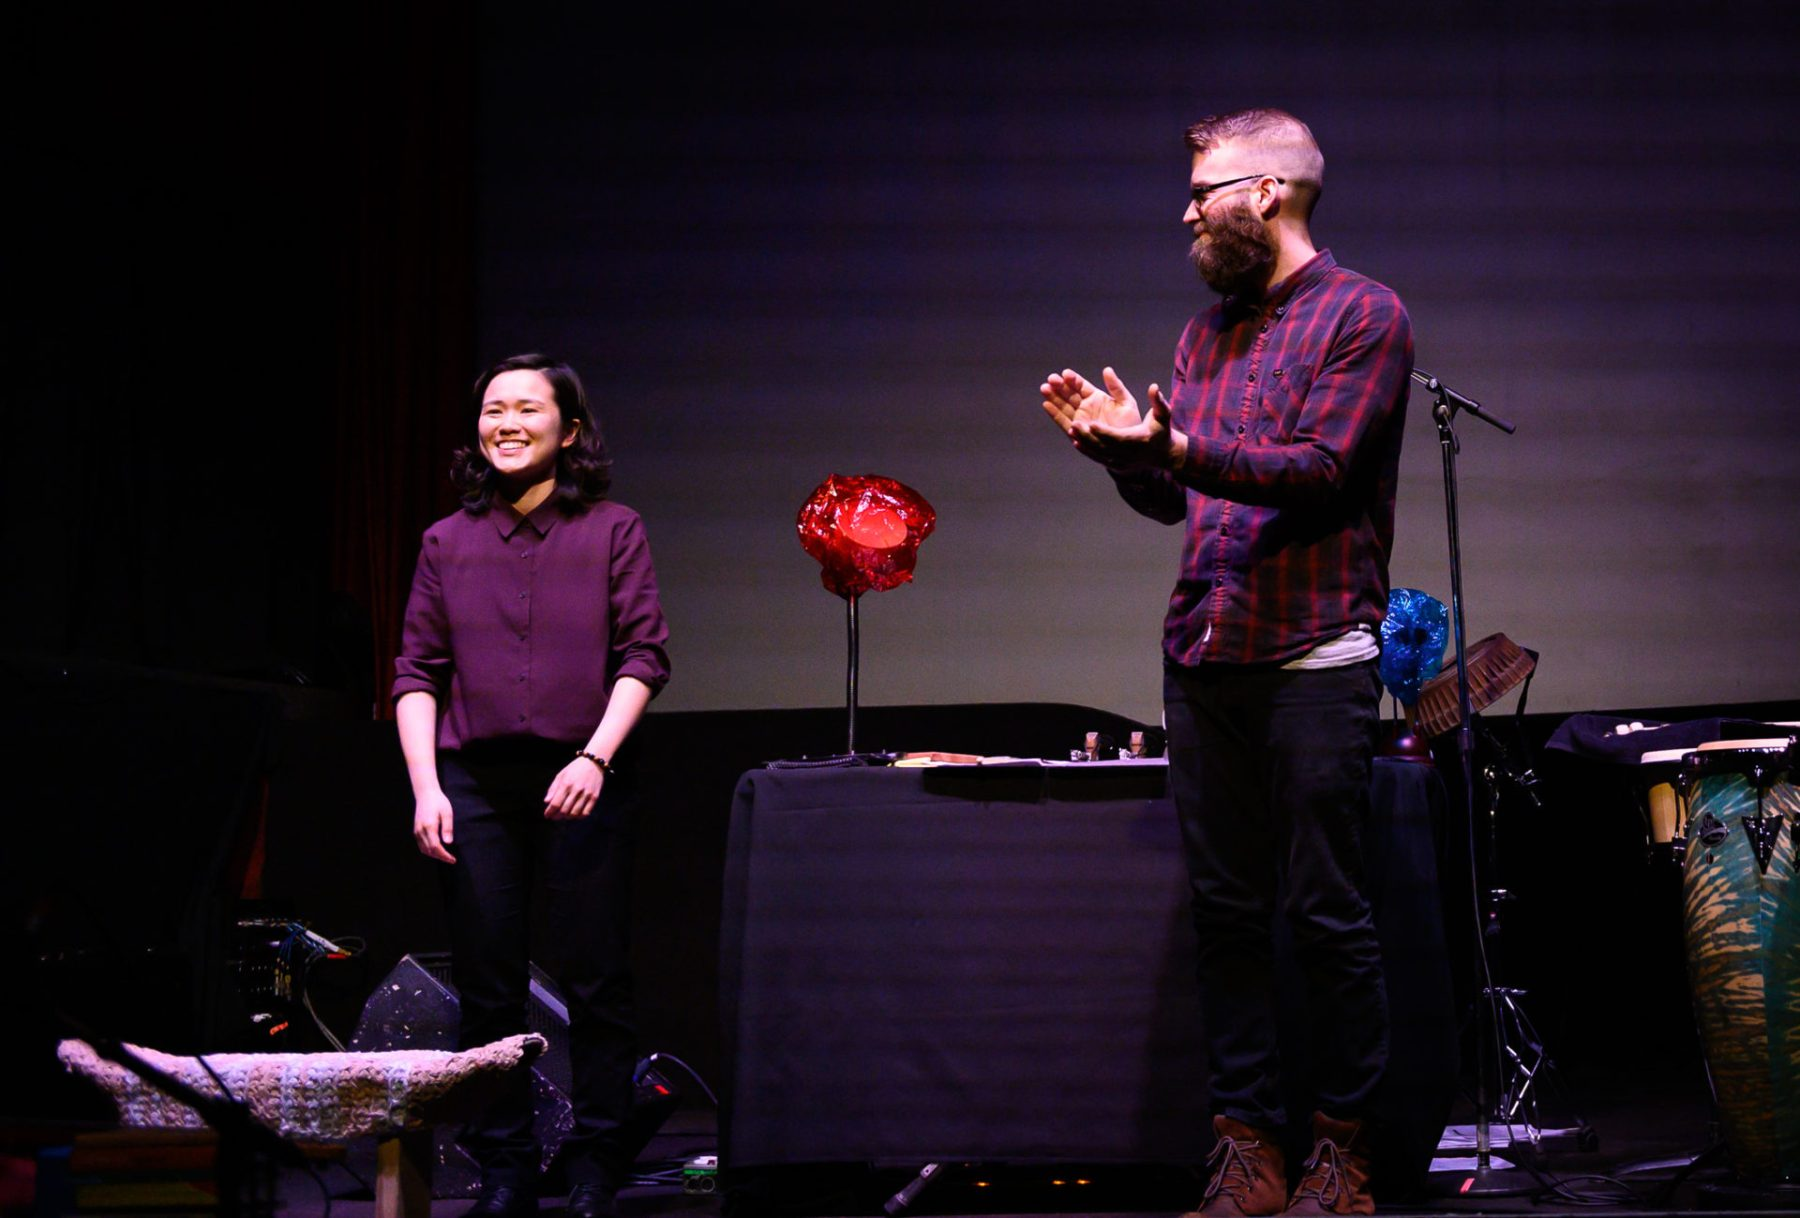 Julia Chien & Aaron Graham, Emerge on Main 2019